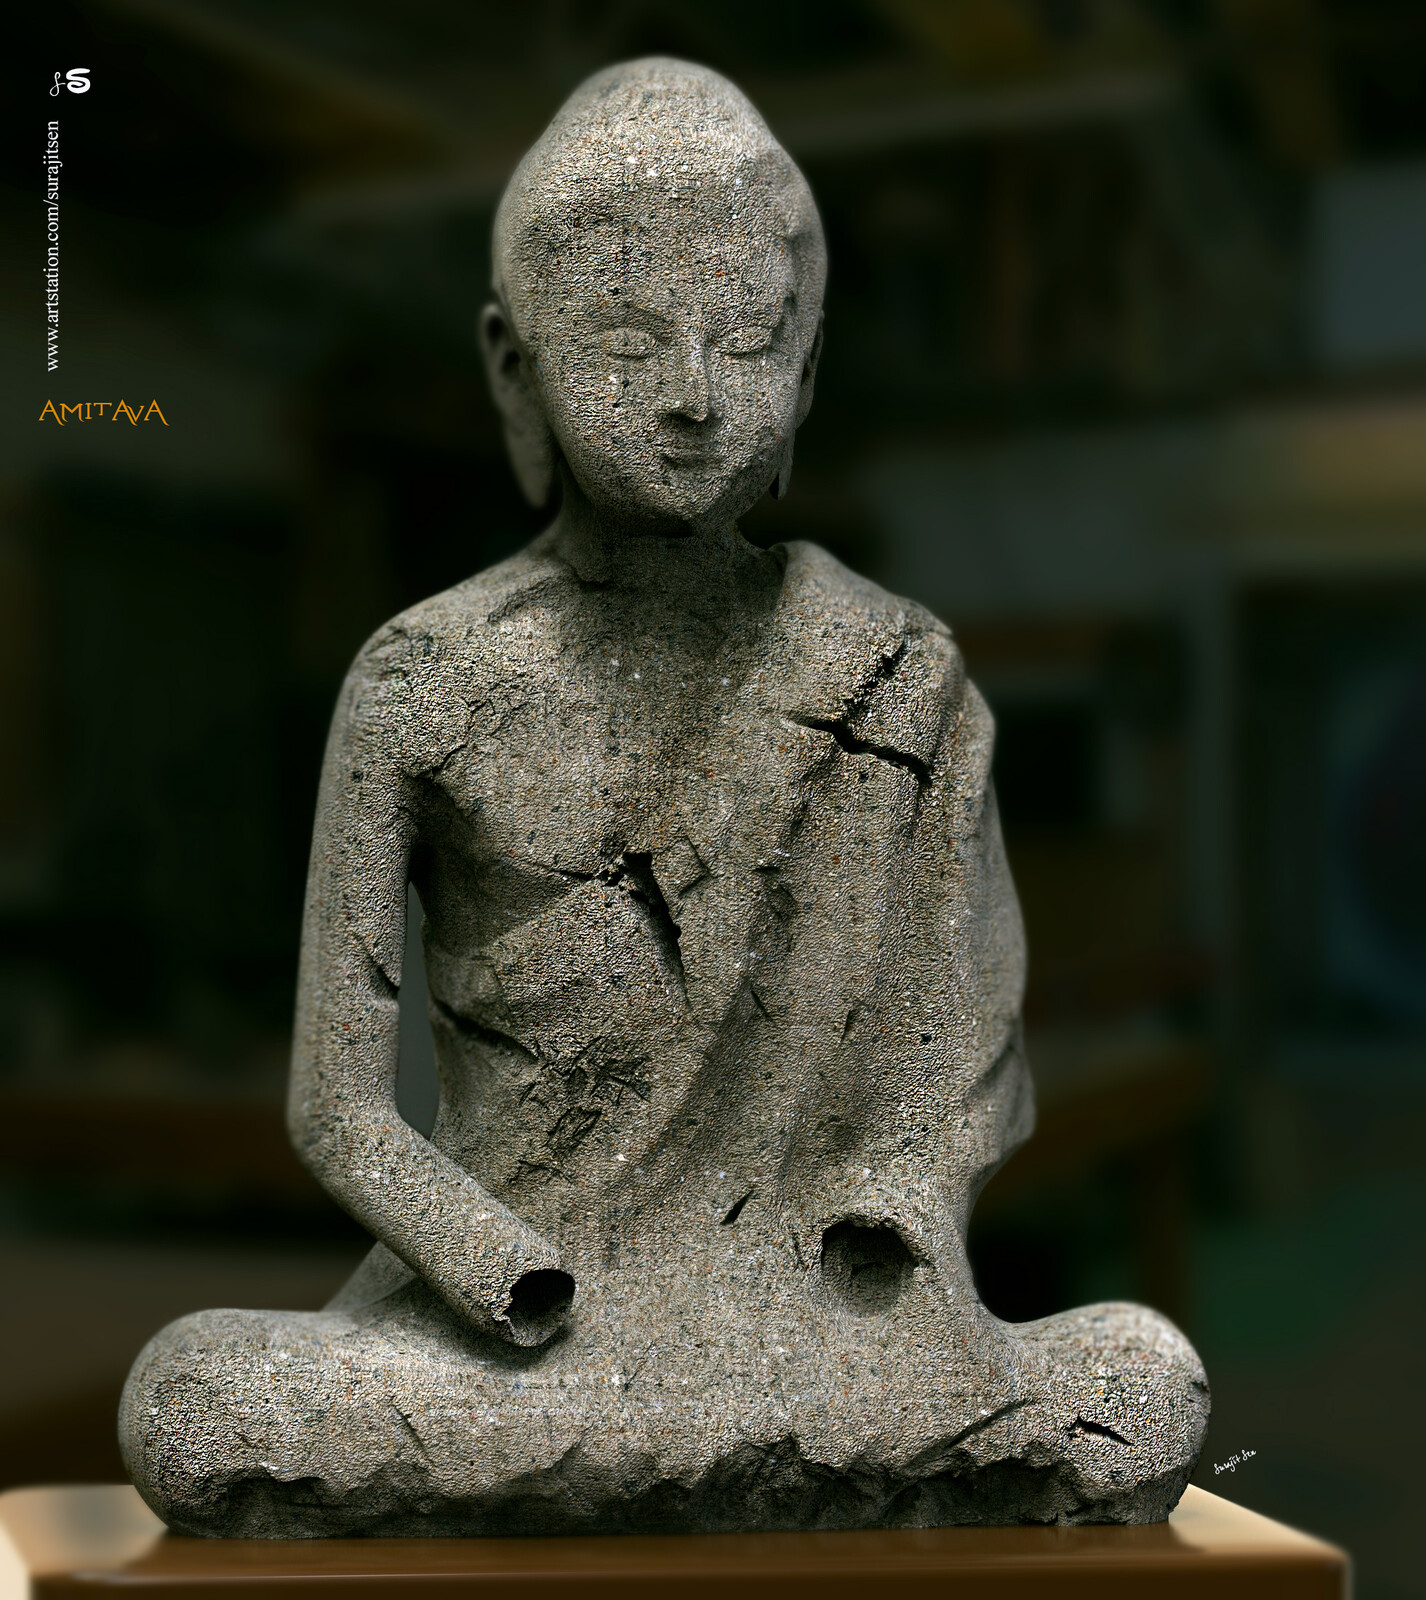 """I like Ancient Art. Wish to share one of my Digital Sculpt Art """"Amitava"""". Inspired by Early 7th century Tang dynasty (China,618–907) Sculpture."""